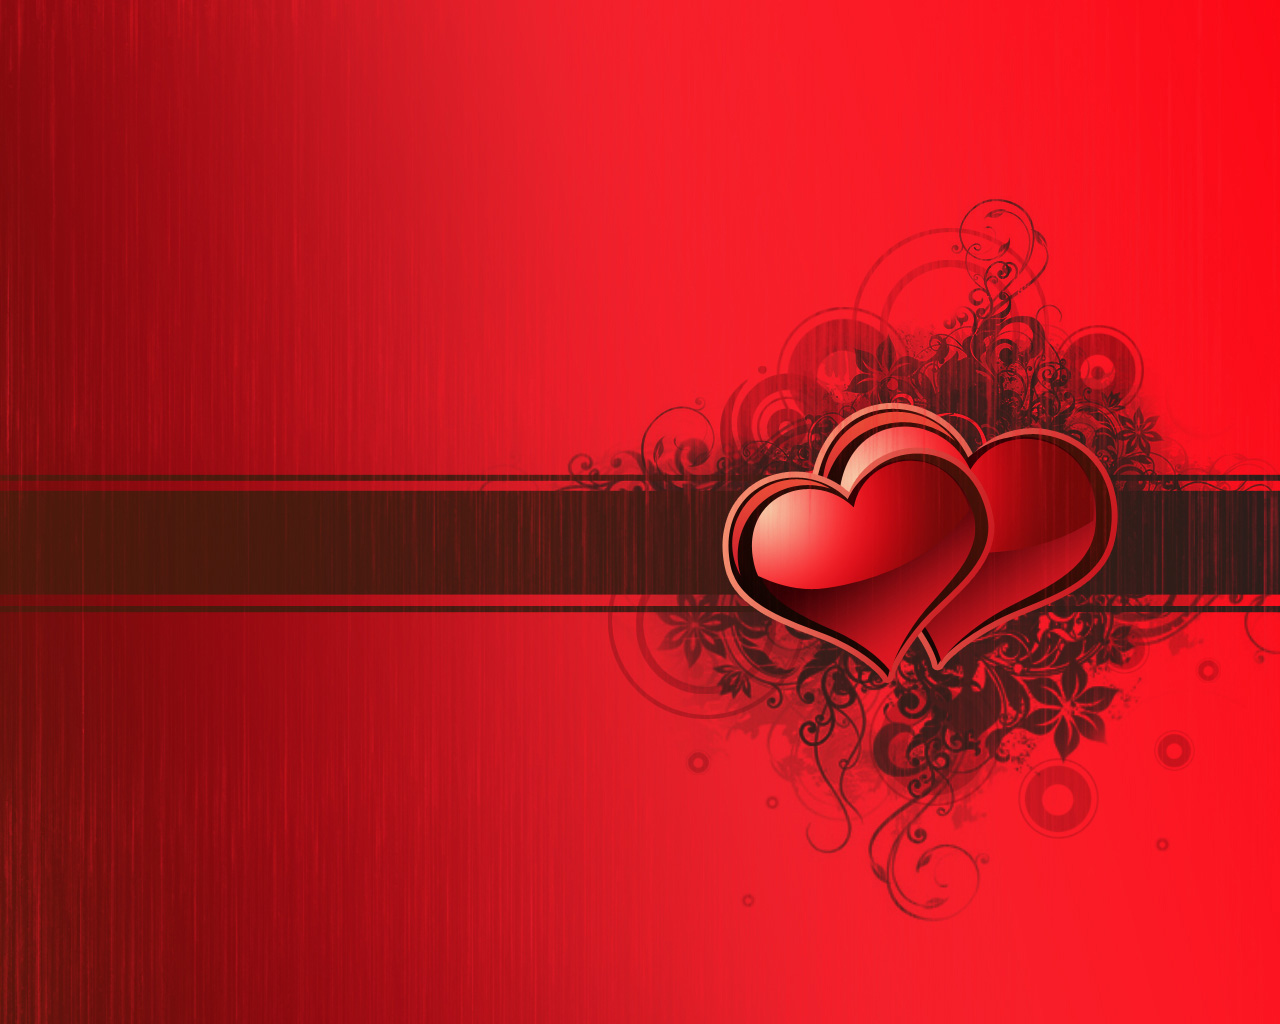 Love Wallpapers Valentine Day : Valentine s Day Wallpapers and Backgrounds